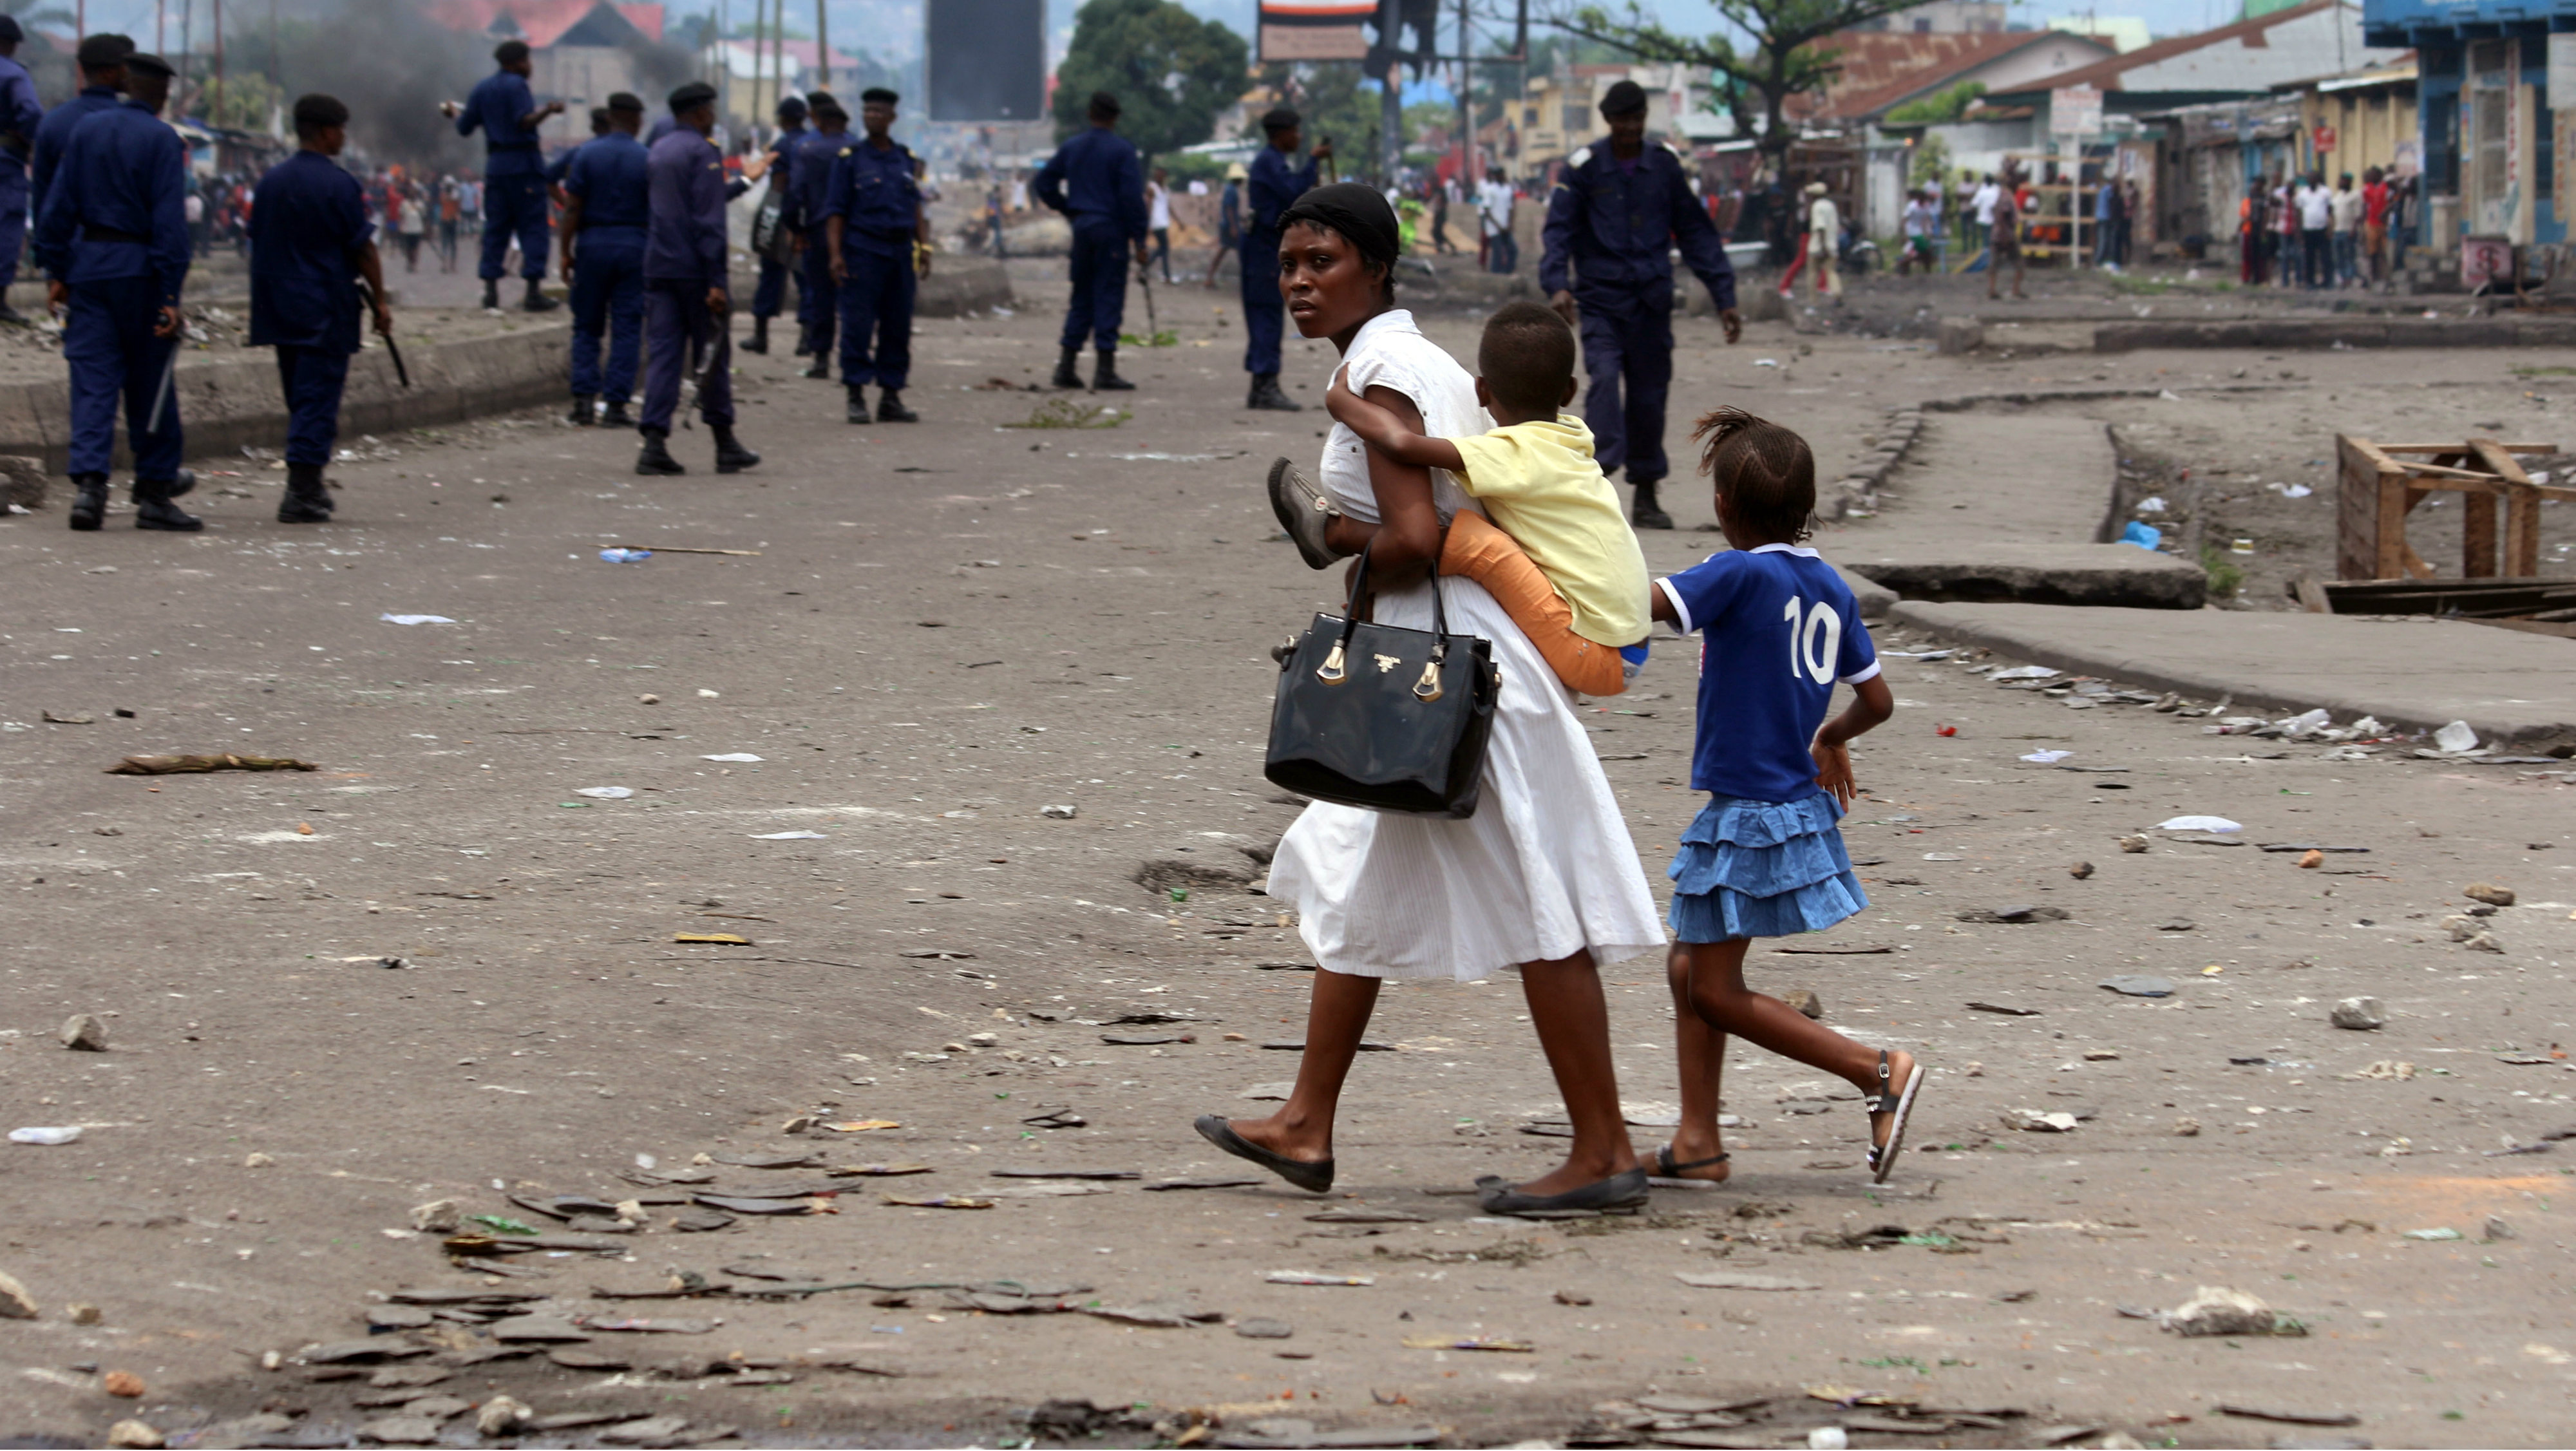 A family pass near Congolese riot police during a protest in Kinshasa, Democratic Republic of Congo, Monday, Sept. 19, 2016. Witnesses say at least four people are dead after opposition protests against a delayed presidential election turned violent in Congo's capital. The protests were organized by activists who are opposed to longtime President Joseph Kabila, who is now expected to stay in office after his mandate ends in December.